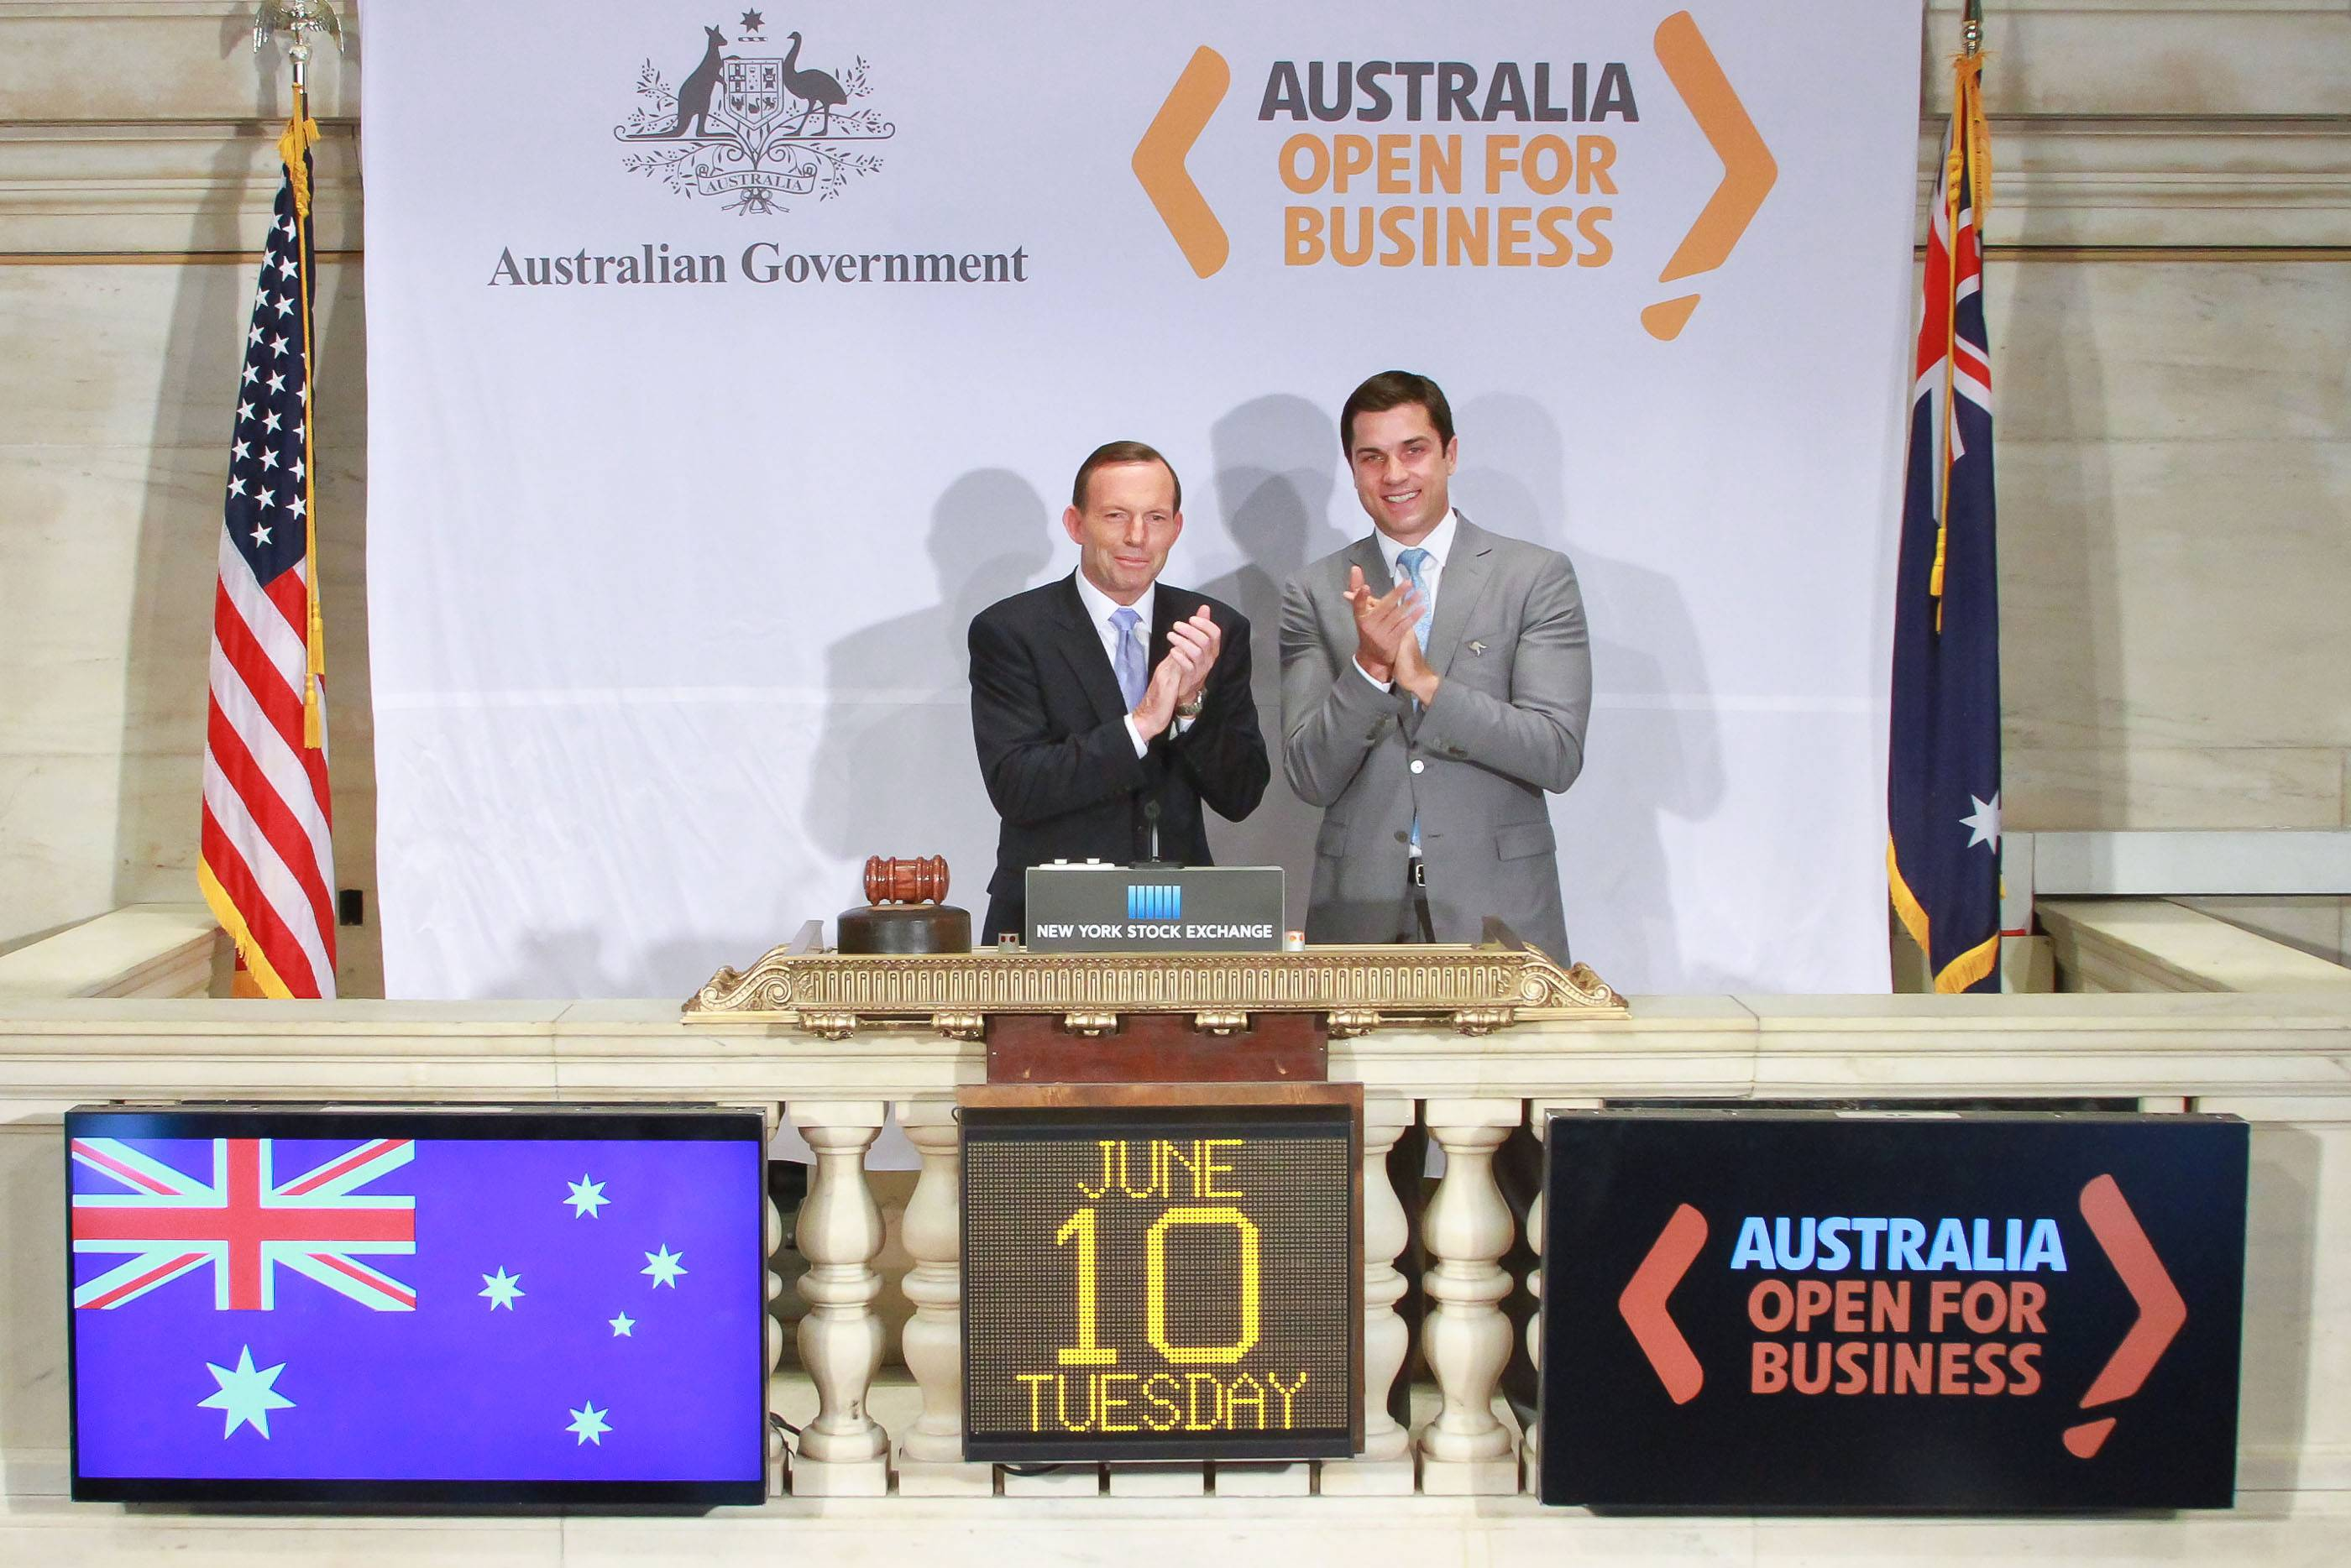 NYSE Euronext, Australian Prime Minister Tony Abbott, left, applauds Tuesday during the opening bell ceremony at the New York Stock Exchange in New York.